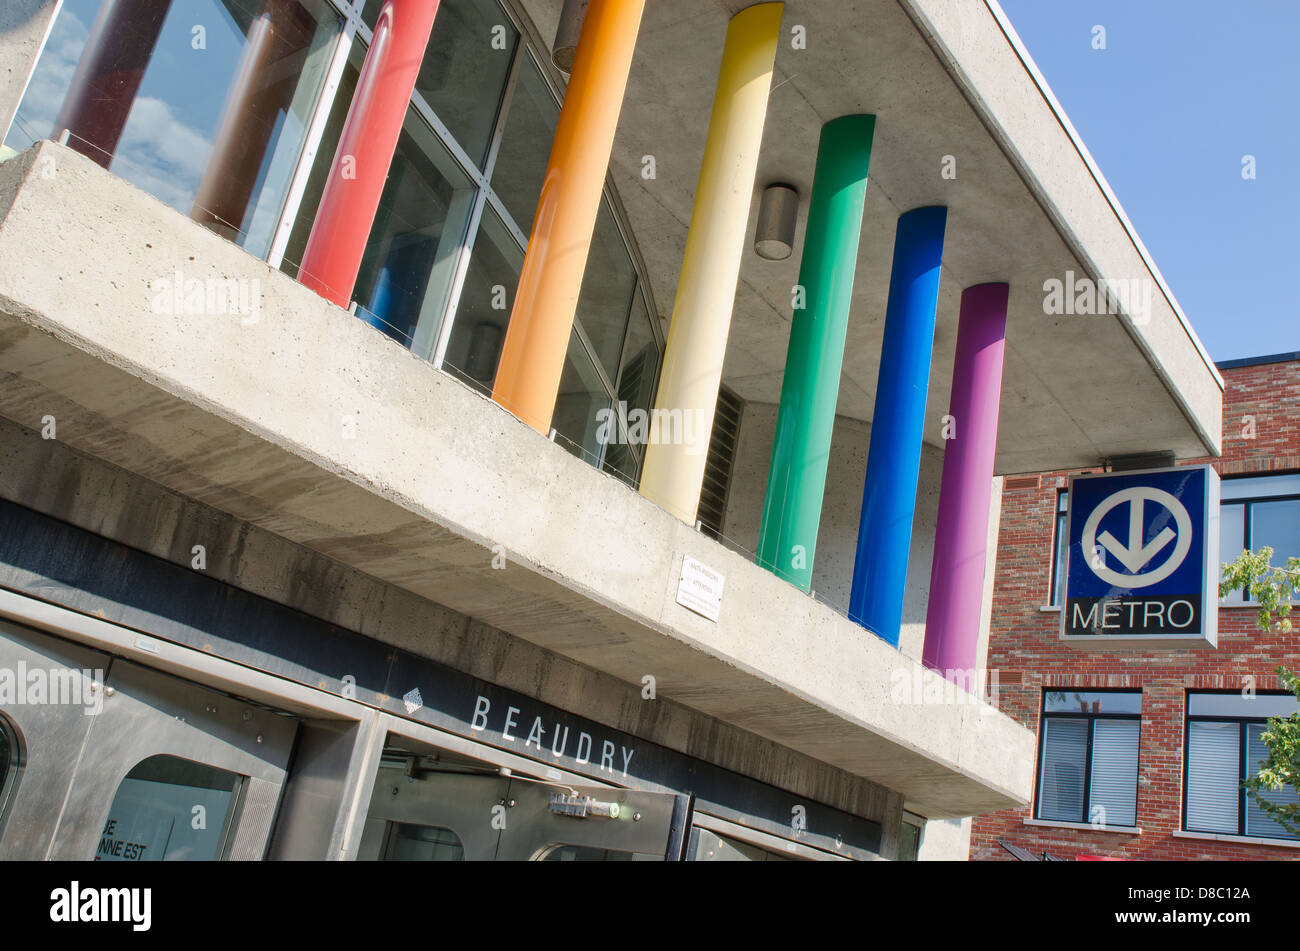 Beaudry Metro Station in Montreal Gay Village - Stock Image